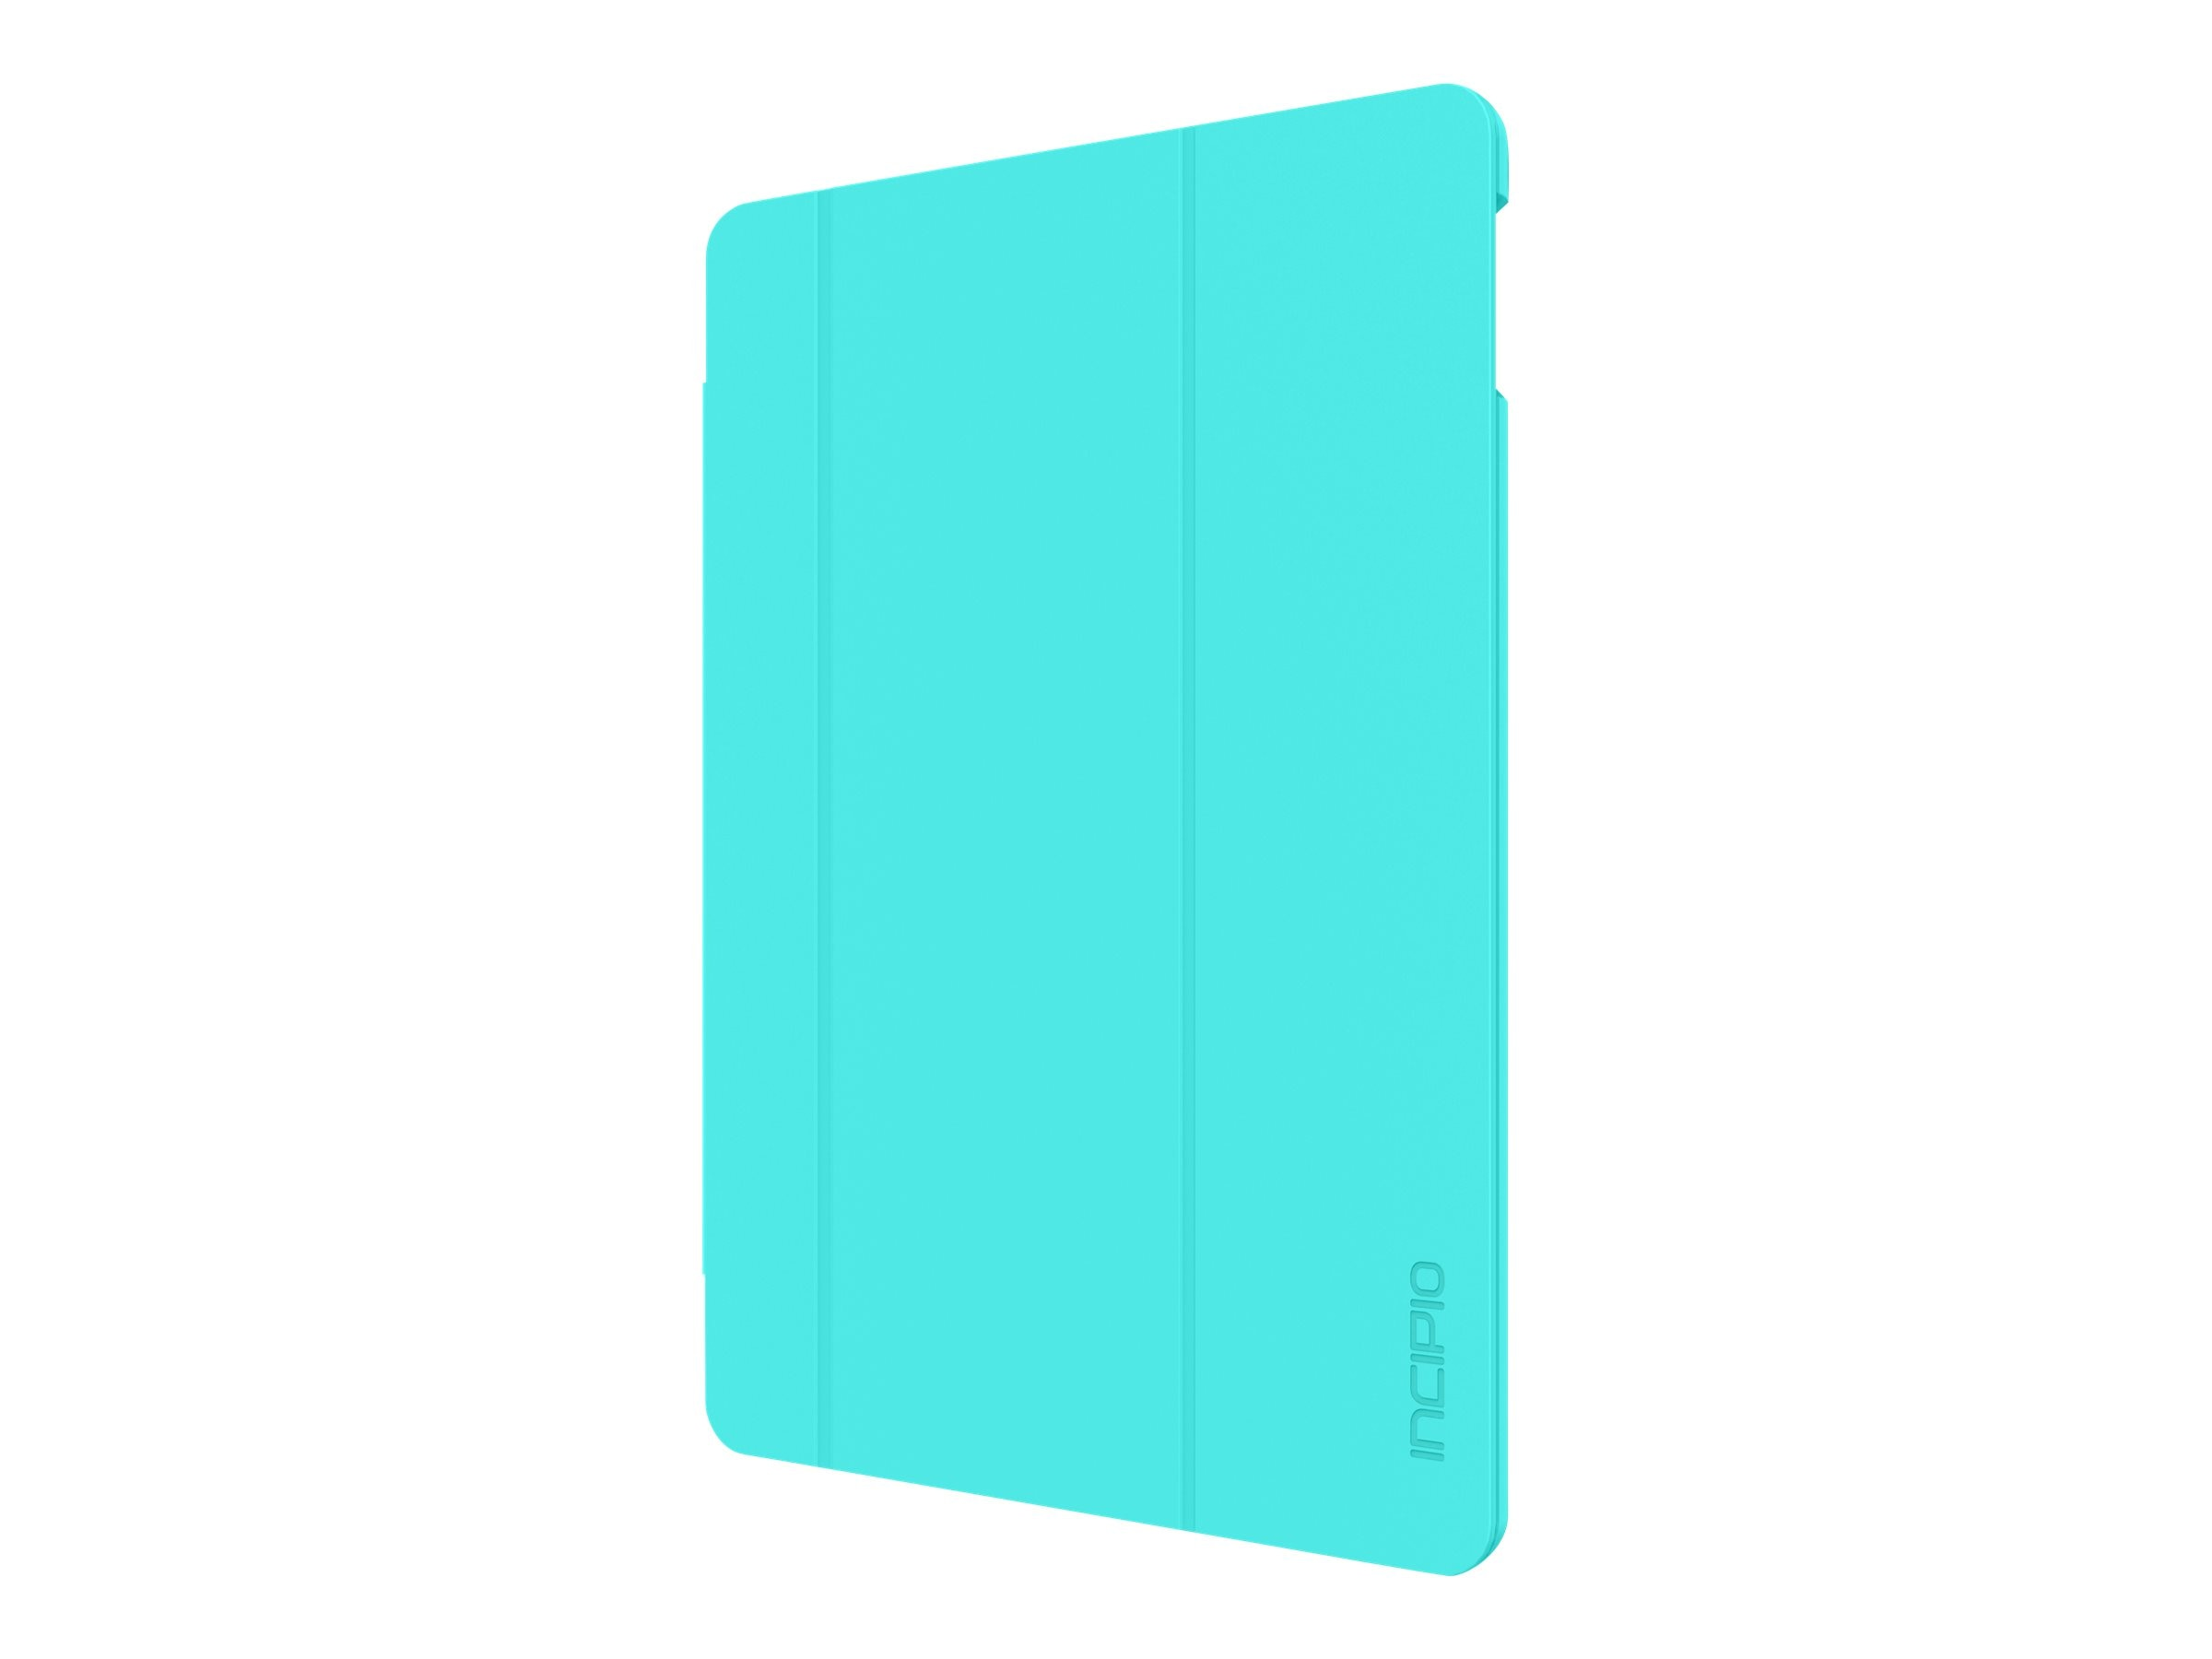 Incipio Tuxen Snap On Folio for iPad Pro 9.7, Turquoise